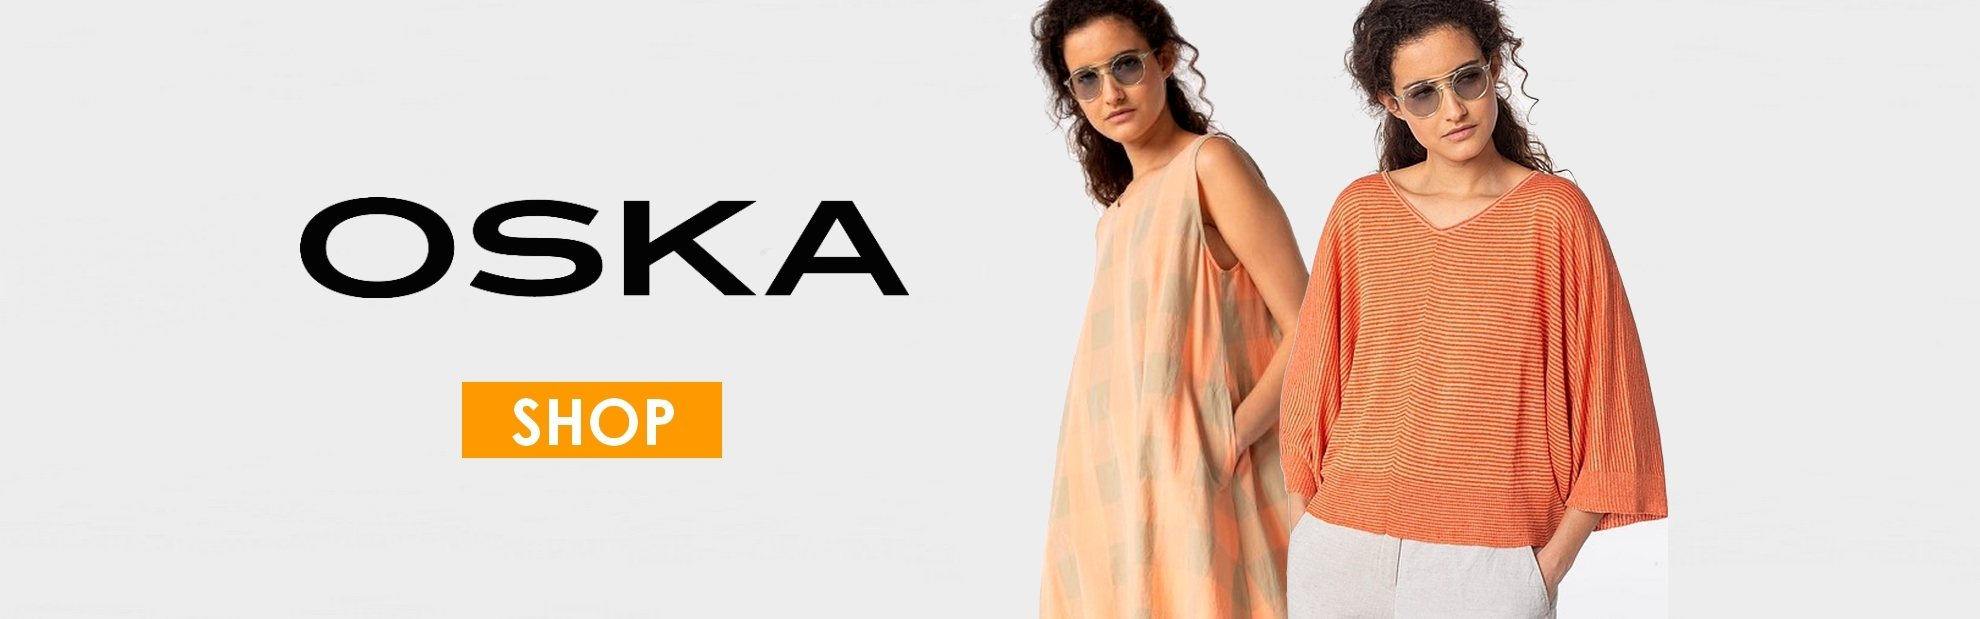 Oska clothing Spring Summer 2021 new collection